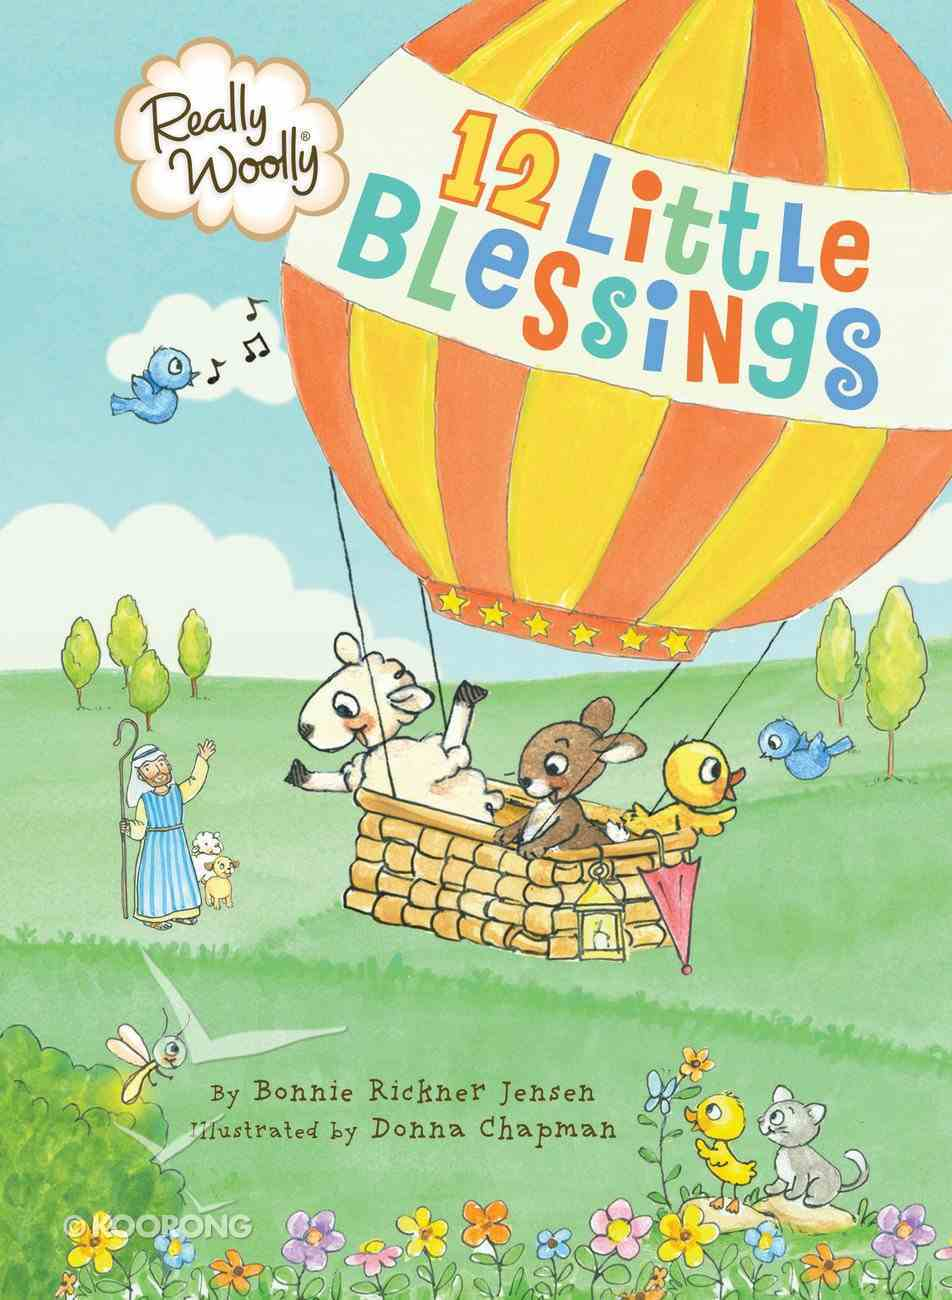 Really Woolly 12 Little Blessings (Really Woolly Series) eBook